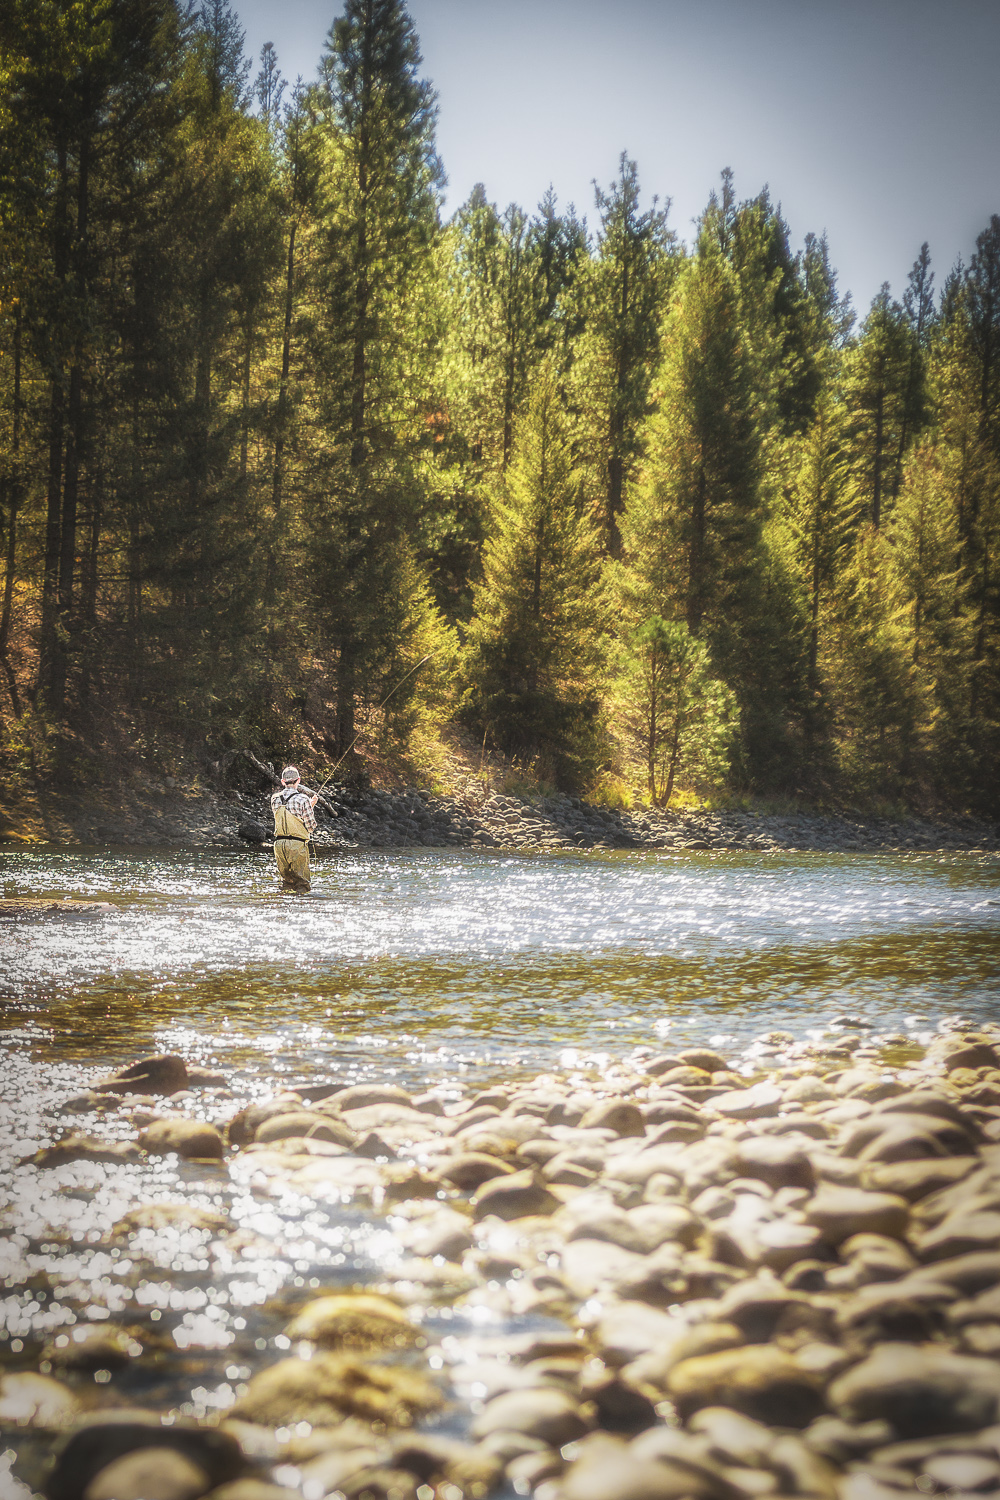 Fishing the Cle Elum River in Washington State via J5MM.com